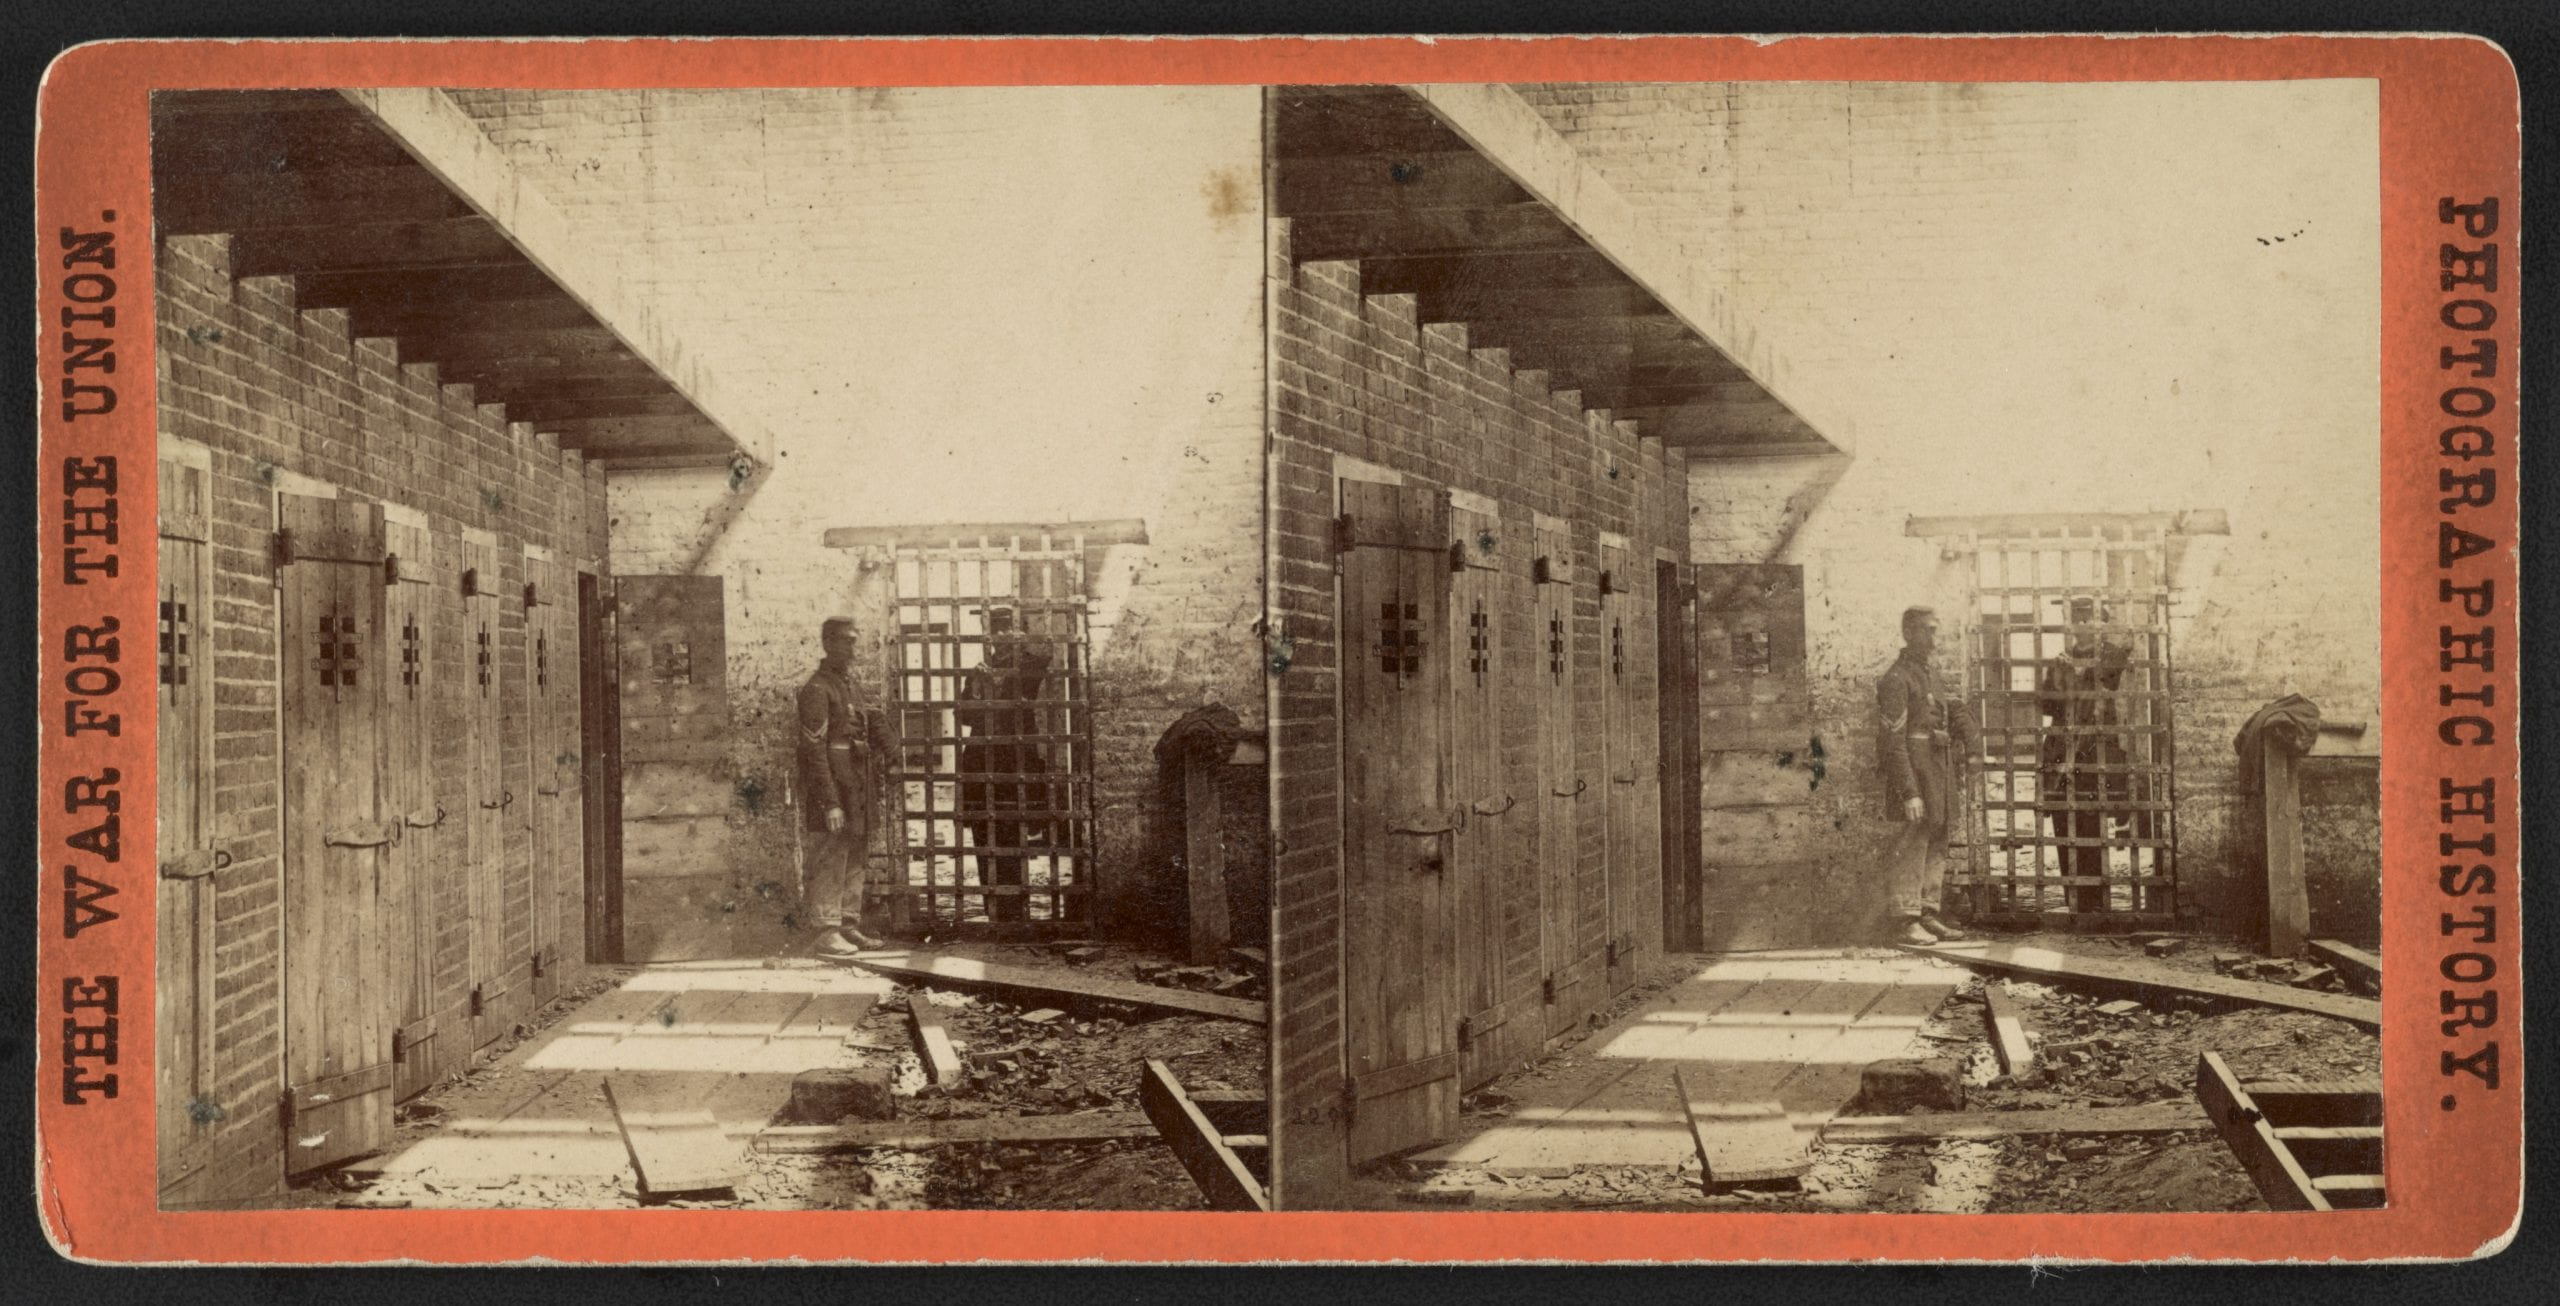 Photograph shows soldiers inside prison area where slaves were held.